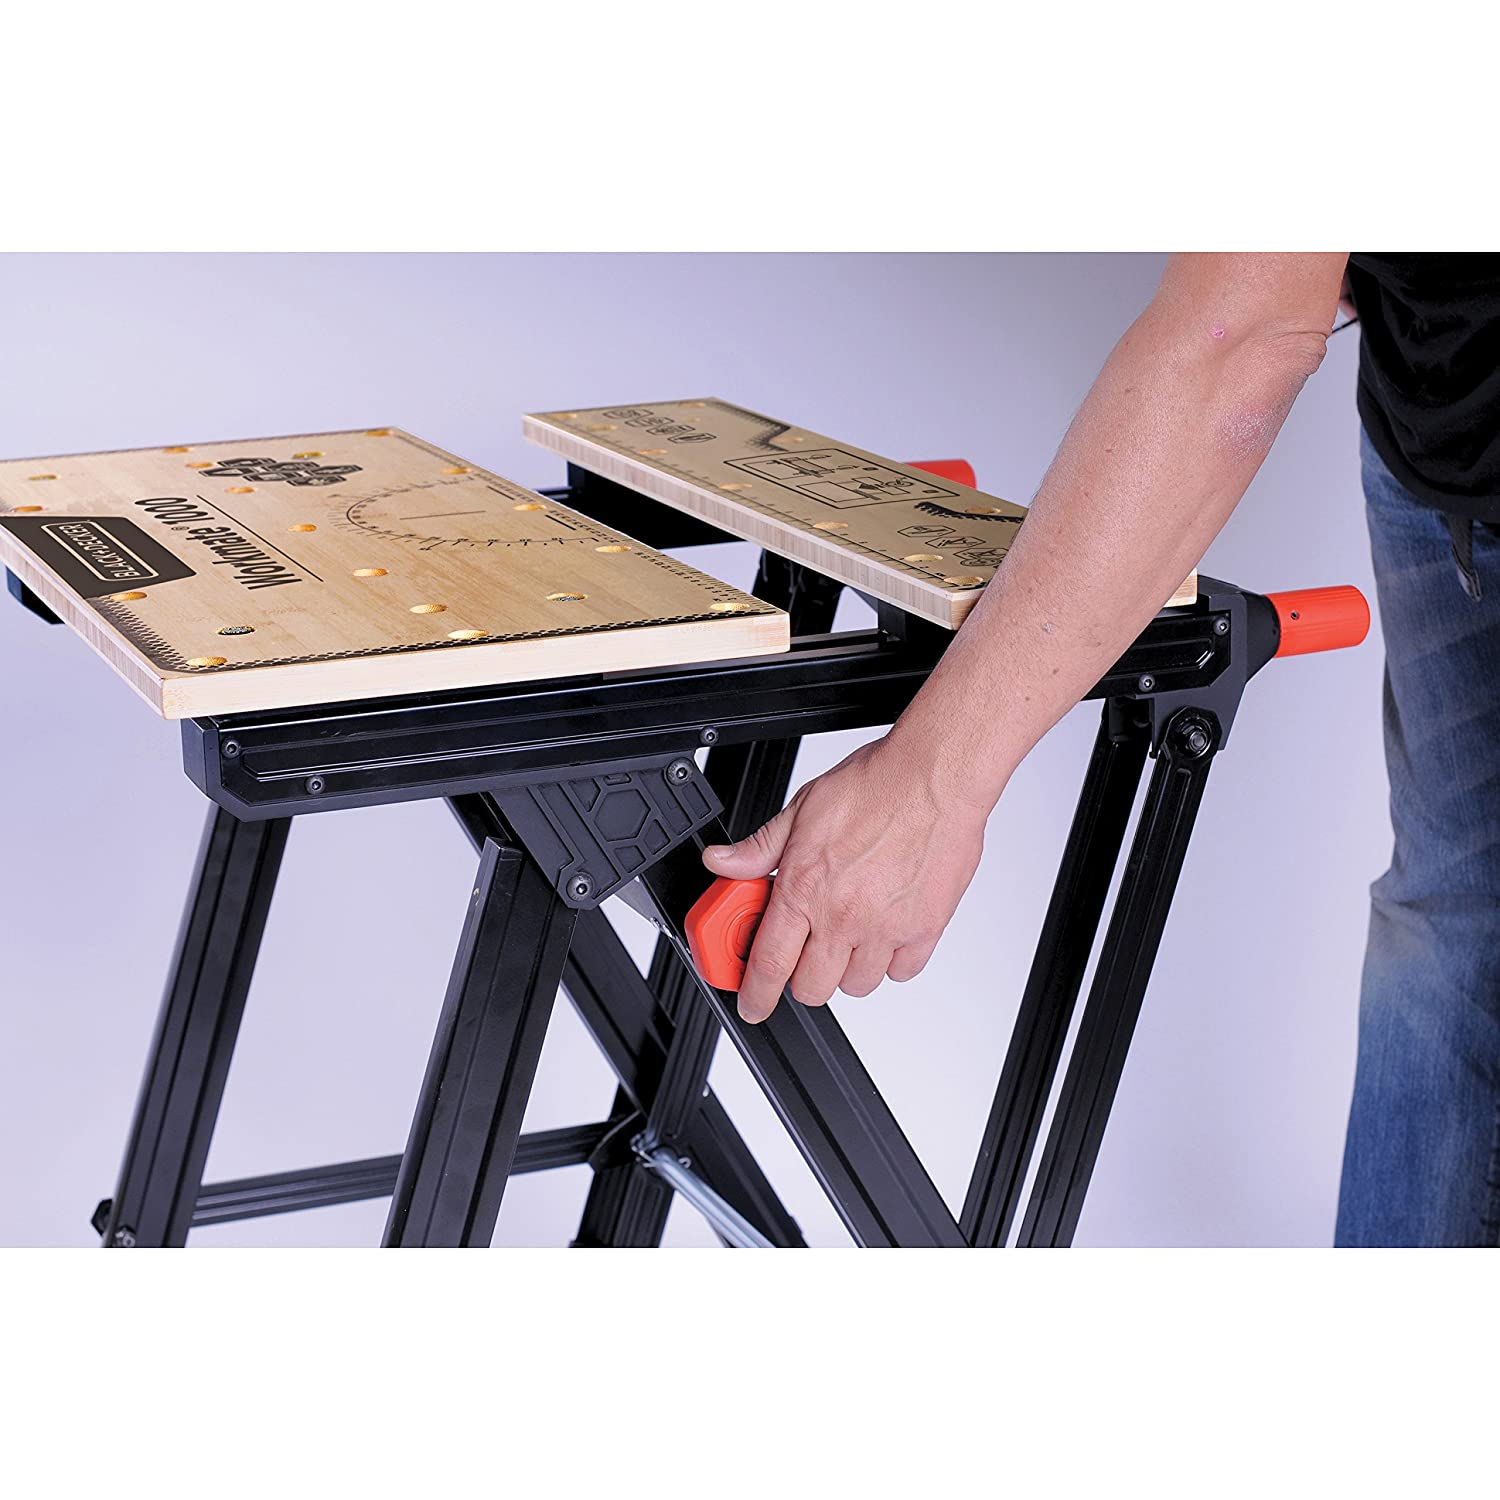 Black and decker workmate 1000 review - Black Decker Wm1000 Workmate Workbench Power Tool Stands Amazon Com